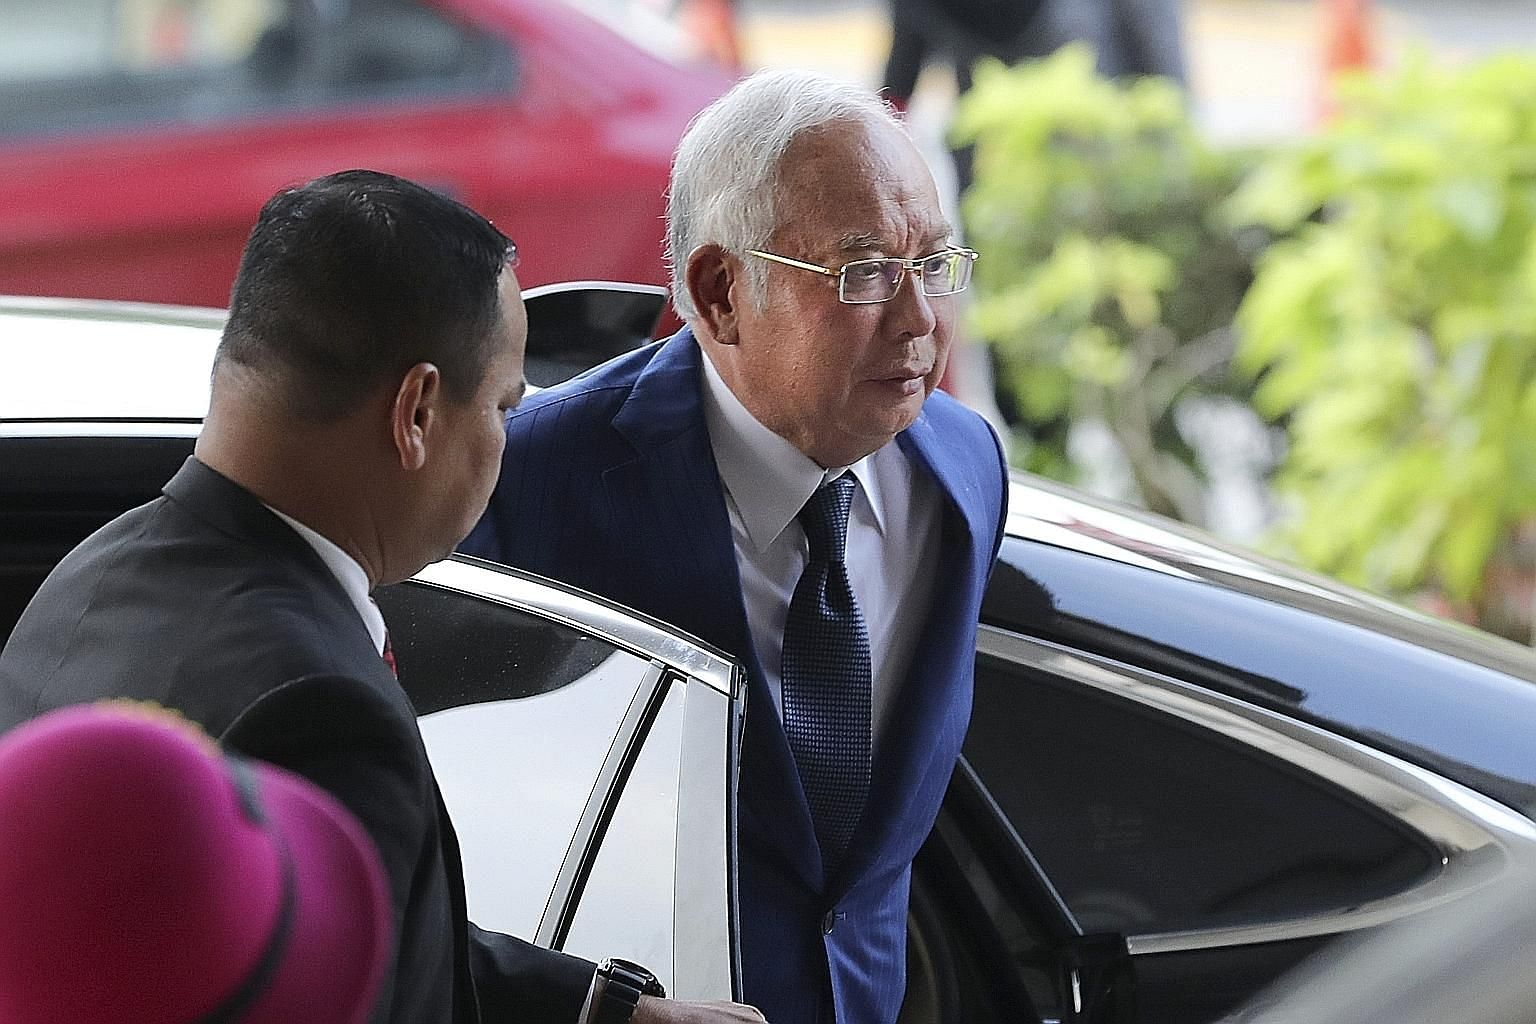 Former Malaysian prime minister Najib Razak arriving at the Kuala Lumpur High Court yesterday. In the second trial due to begin today, he faces 25 charges of abuse of power for receiving illegal transfers.